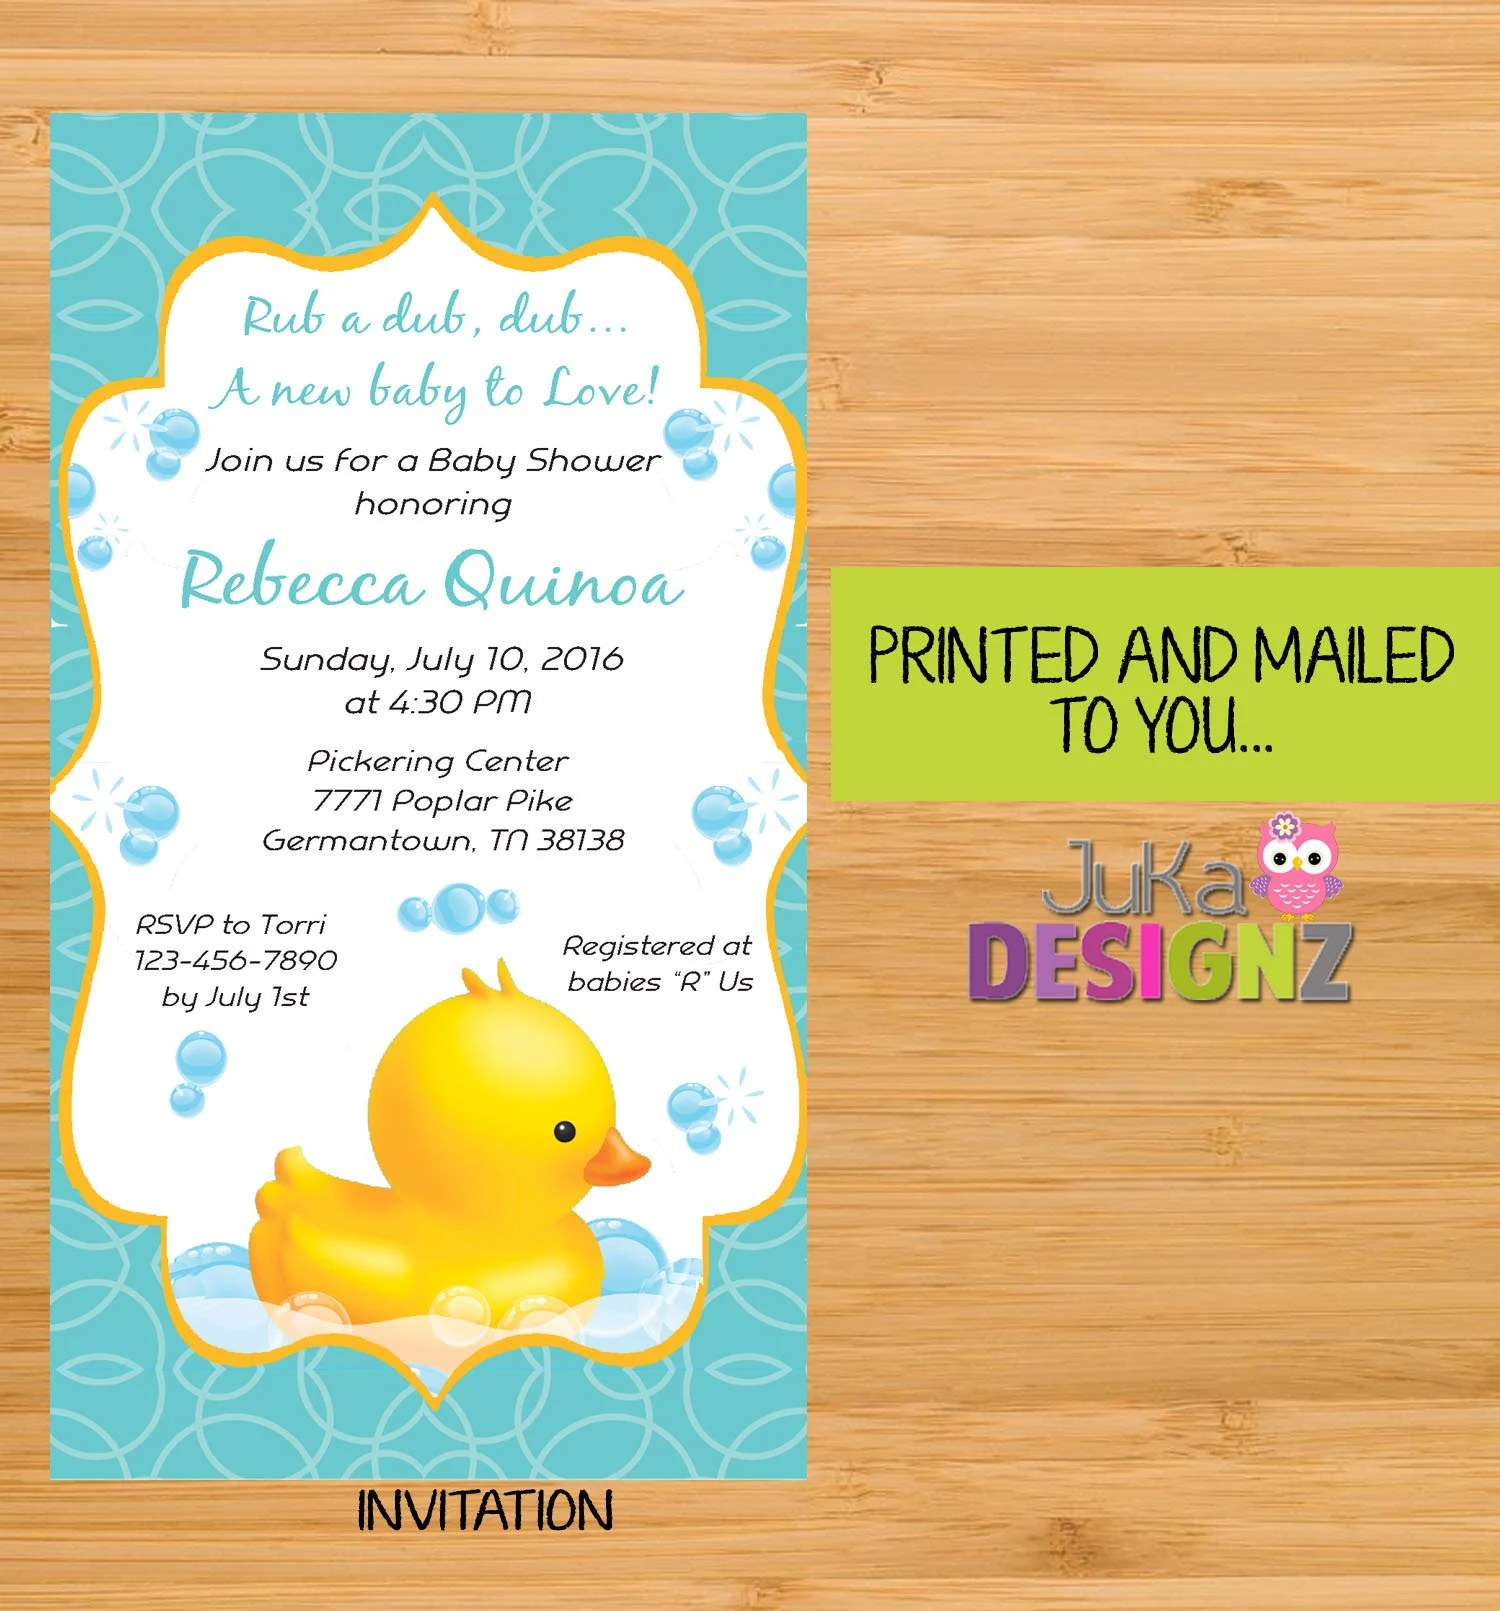 Babies R Us Pickering Rubber Duck Ducky Boy Baby Shower Invitations And More Variety Or Sets Printed And Mailed To You